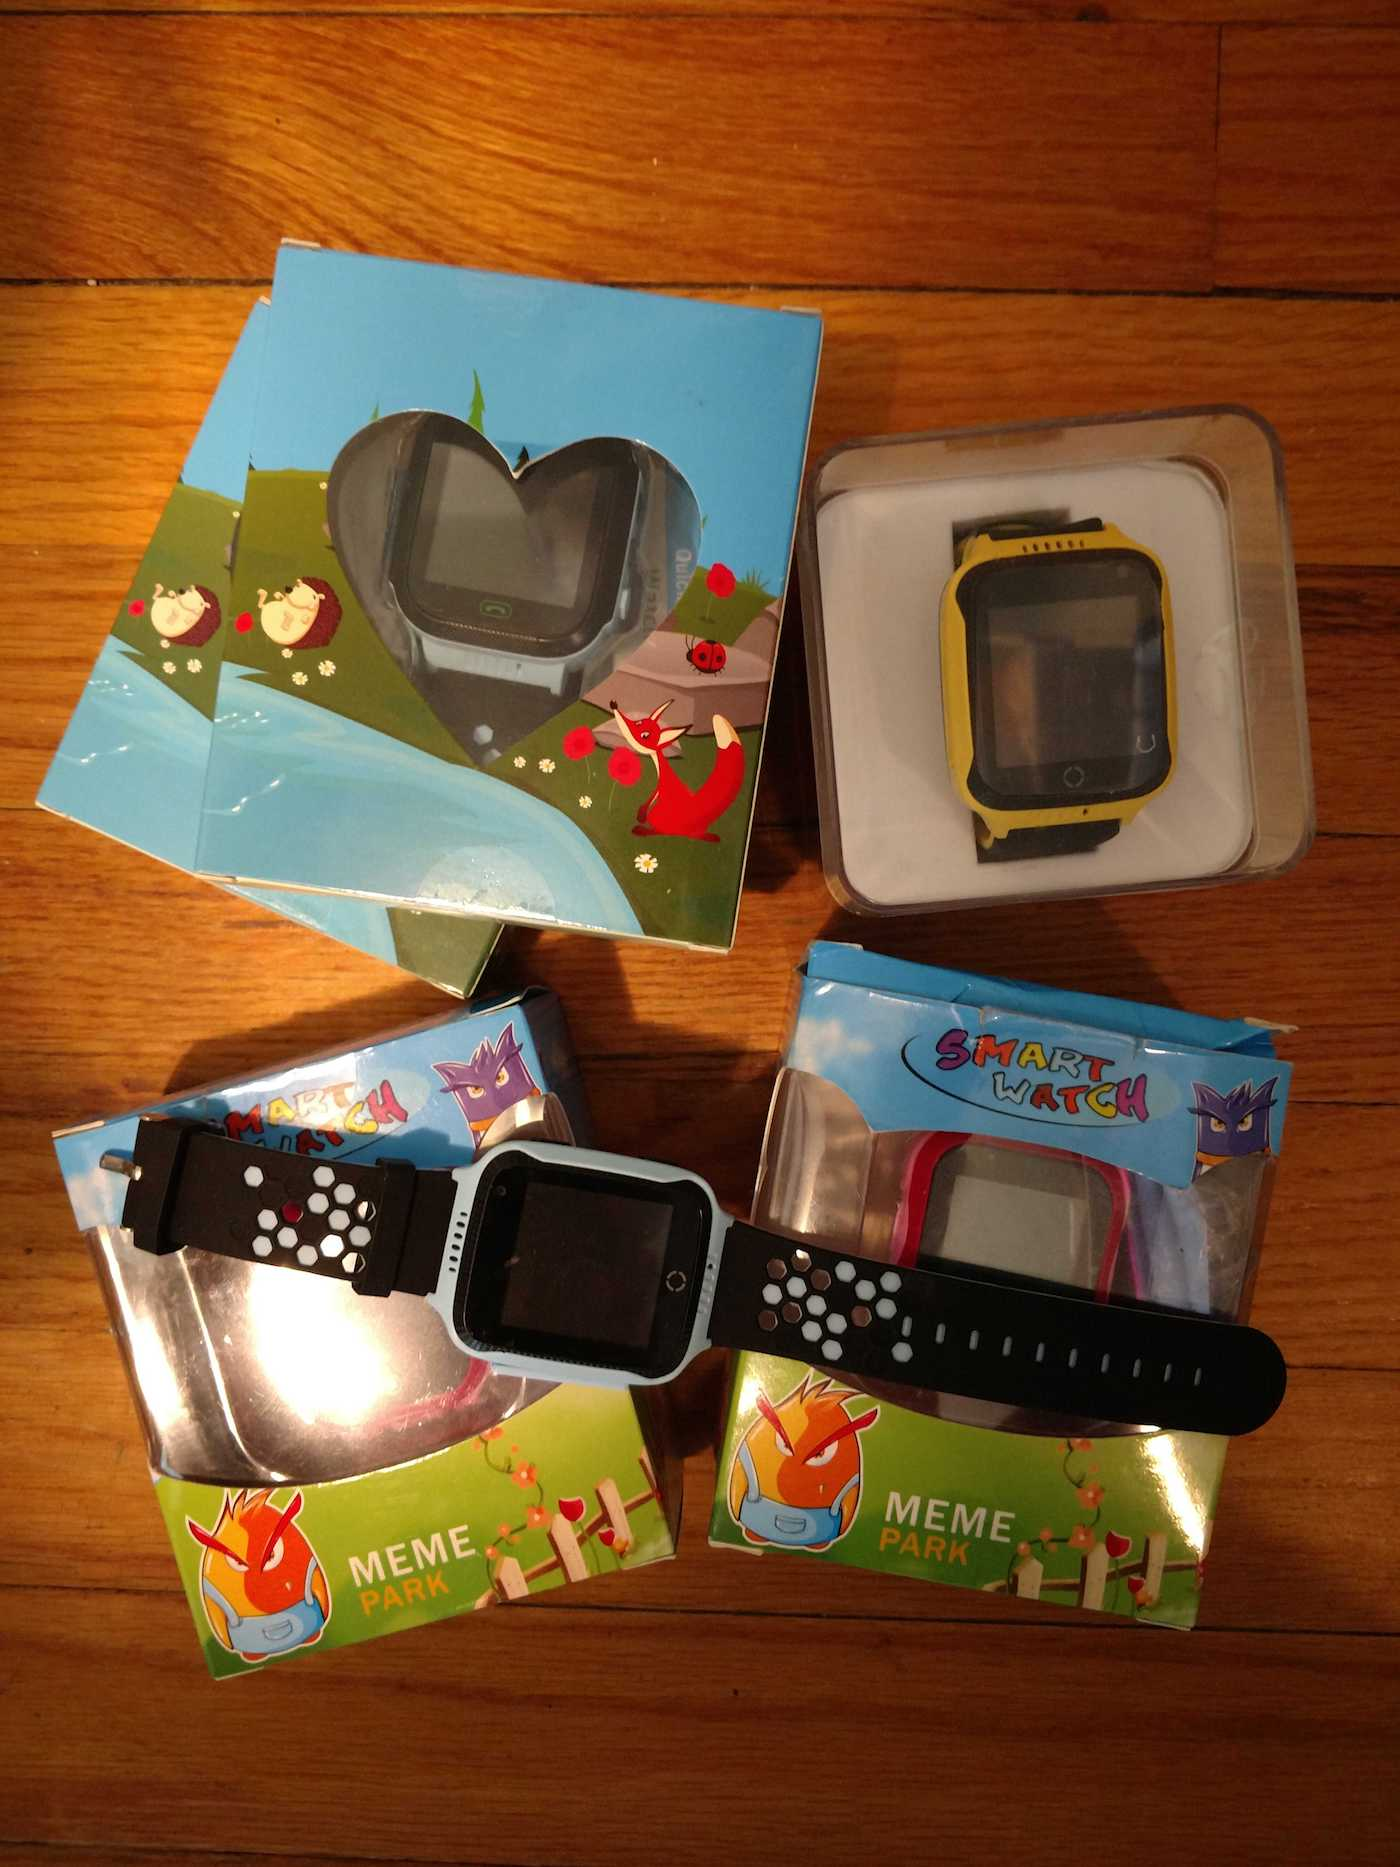 The children's smartwatches exist vulnerability that discloses GPS smartwatches